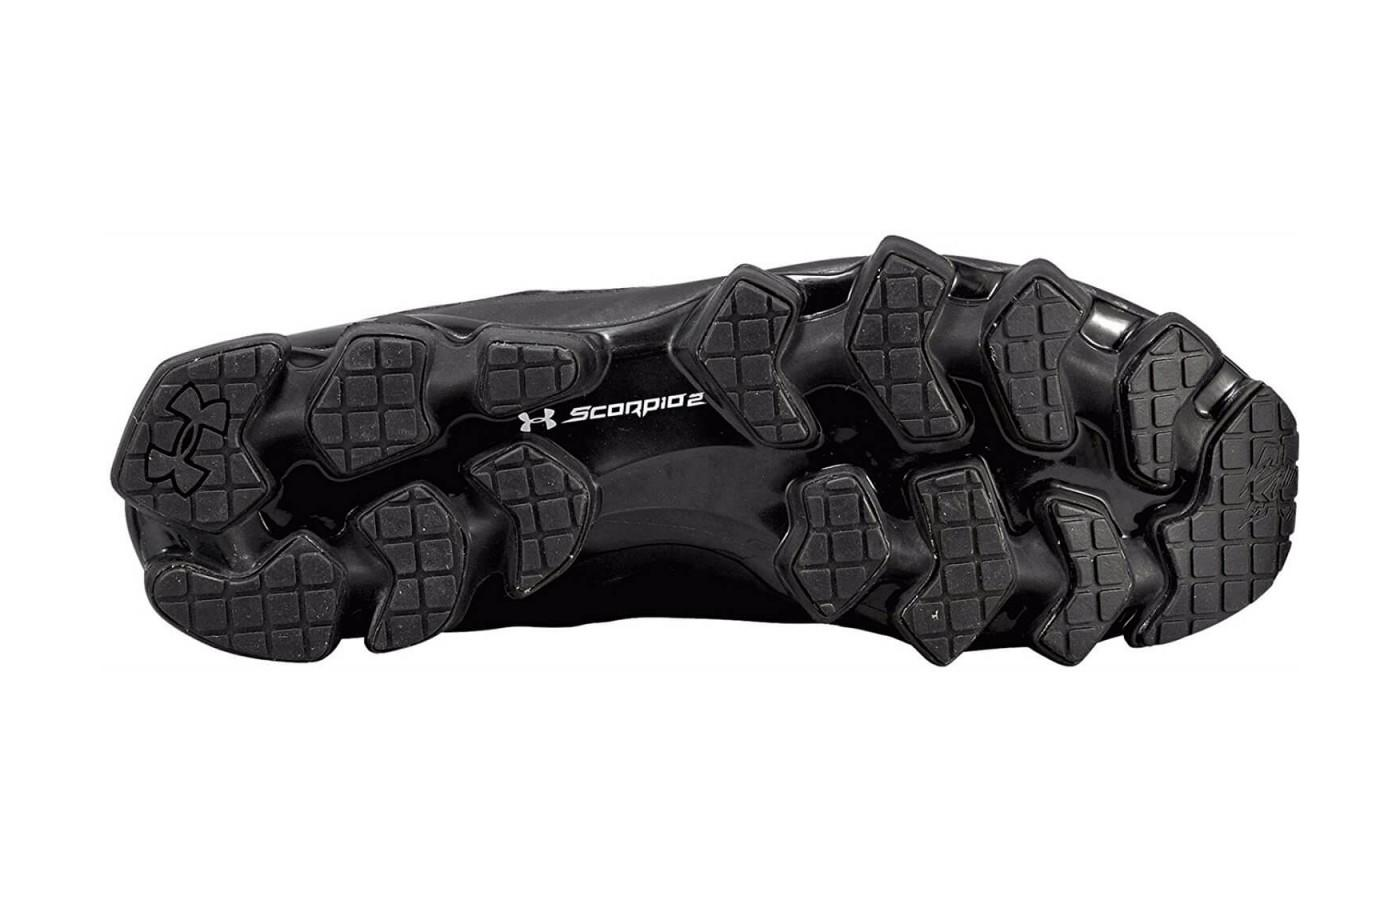 Under Armour Scorpio 2 features a carbon rubber and blown rubber outsole